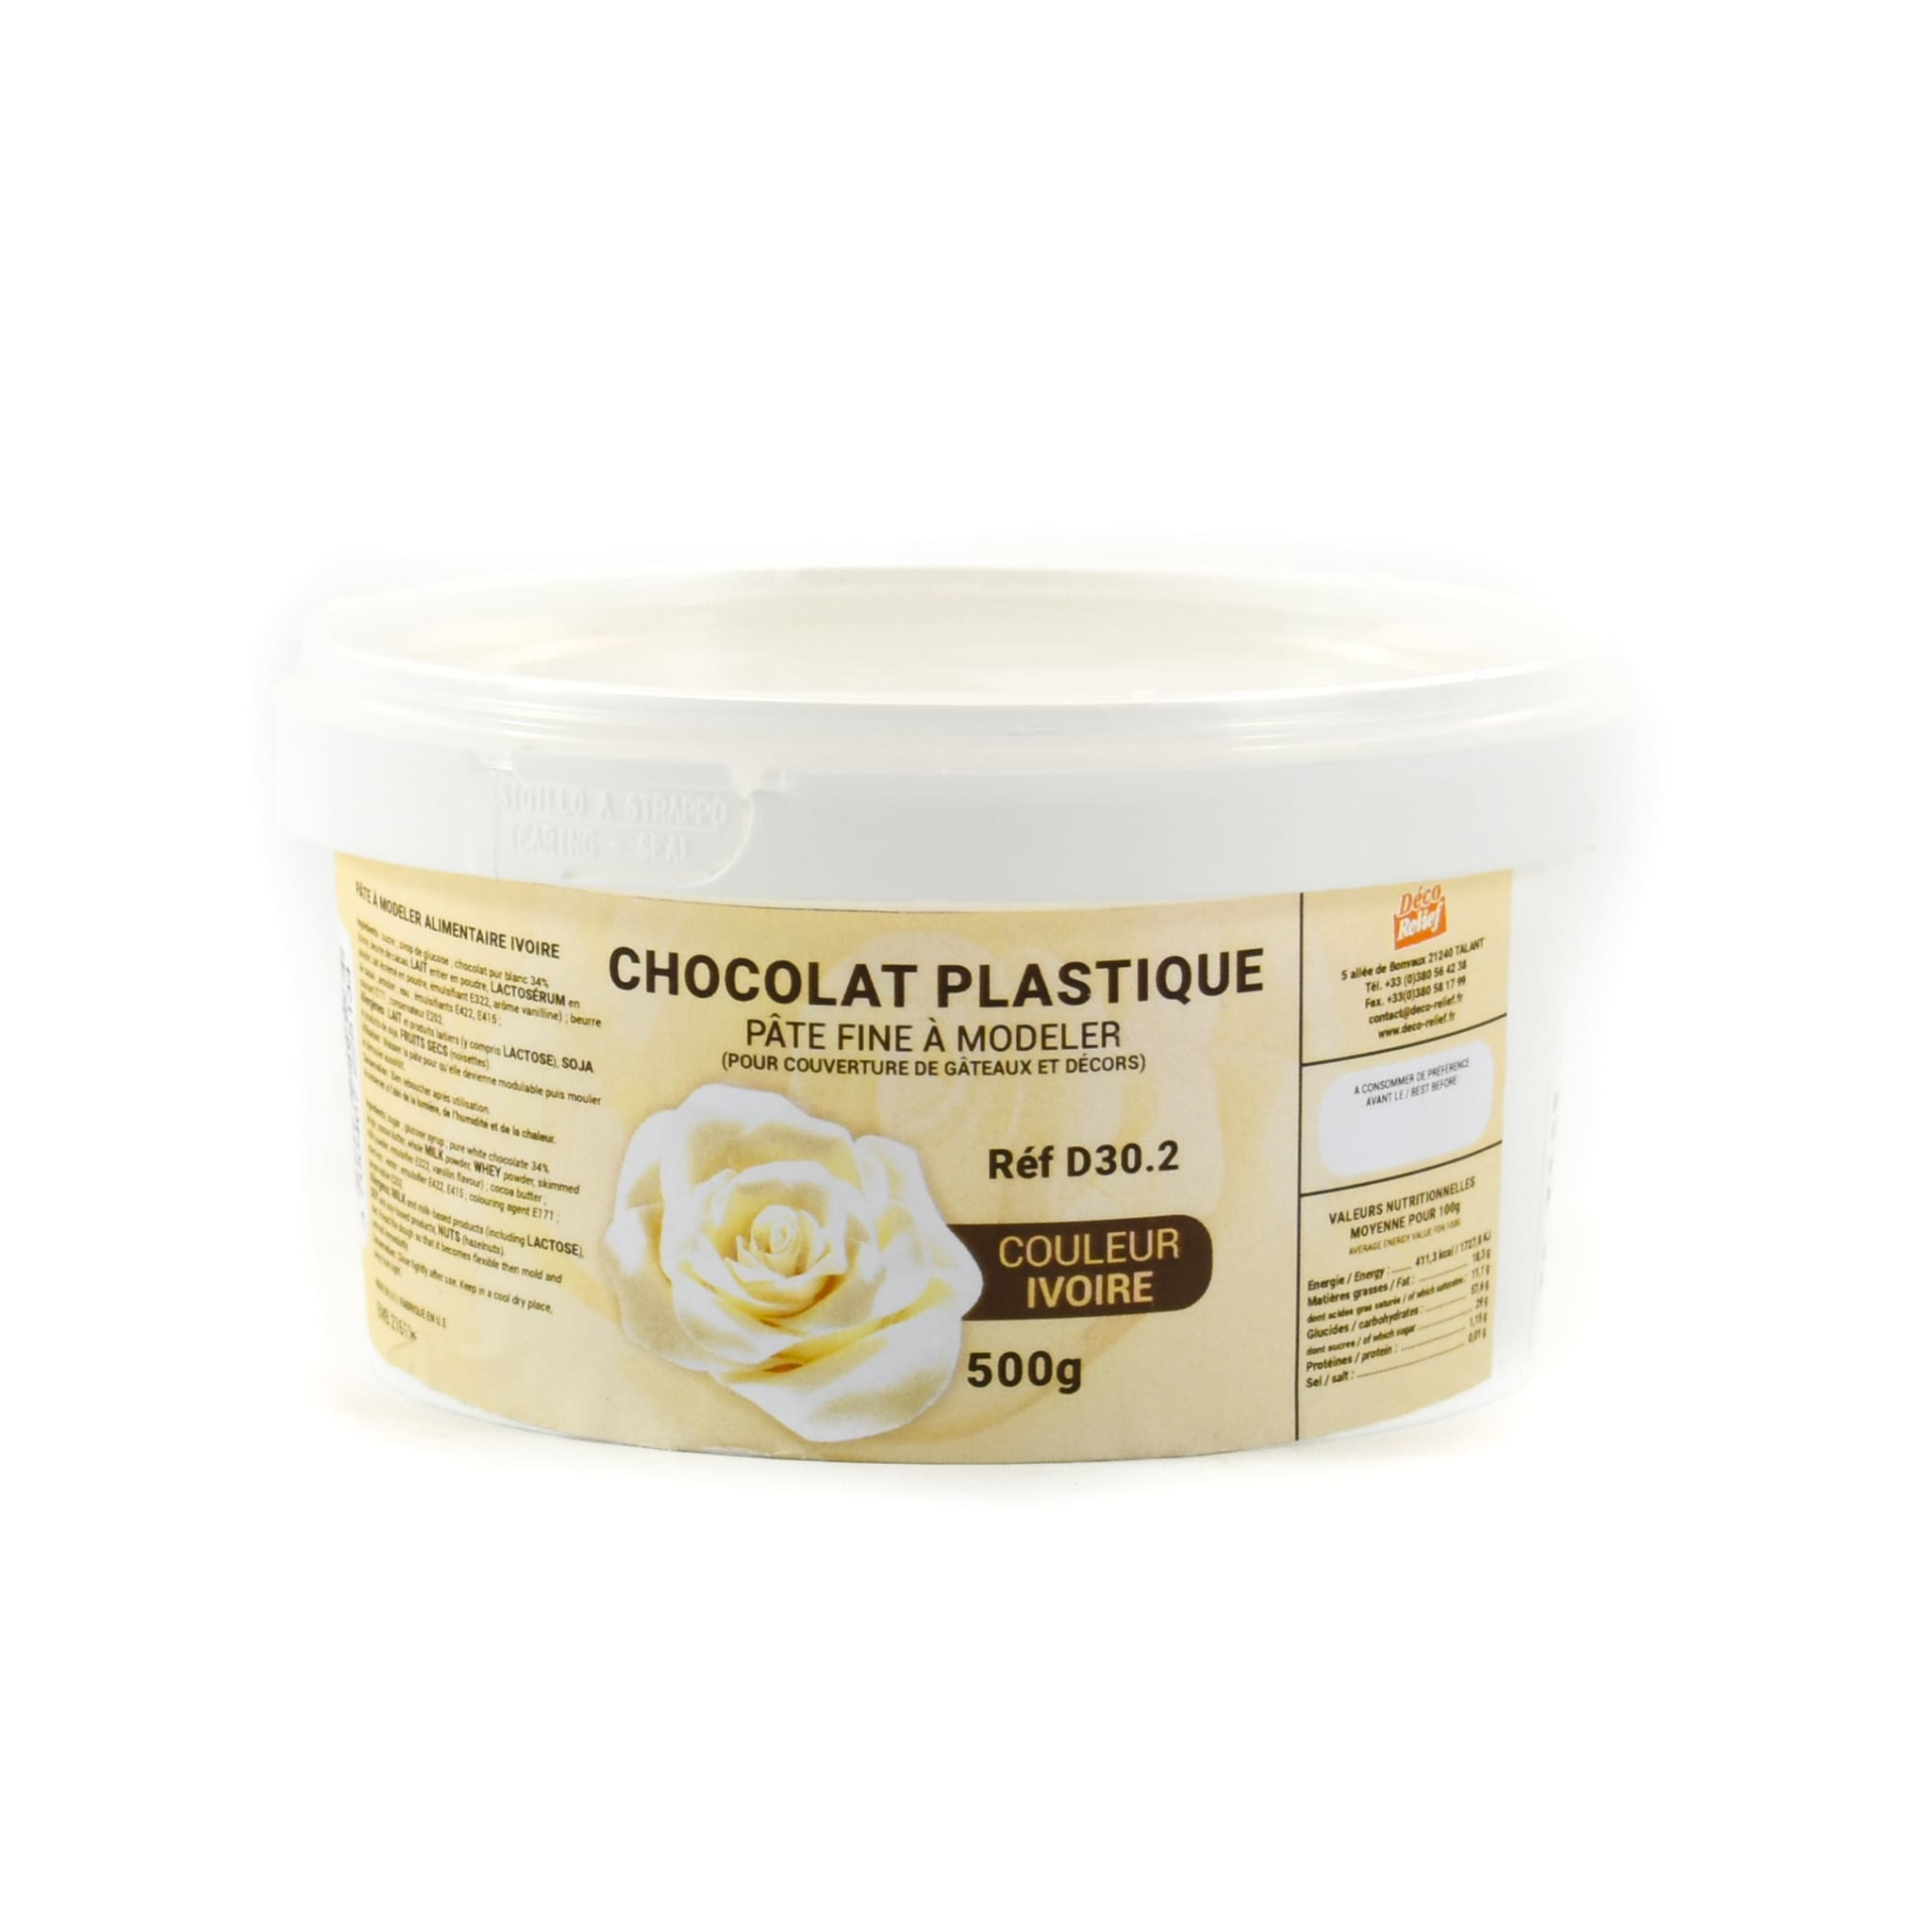 Ivory Chocolate Plastique - Modelling Chocolate 500g